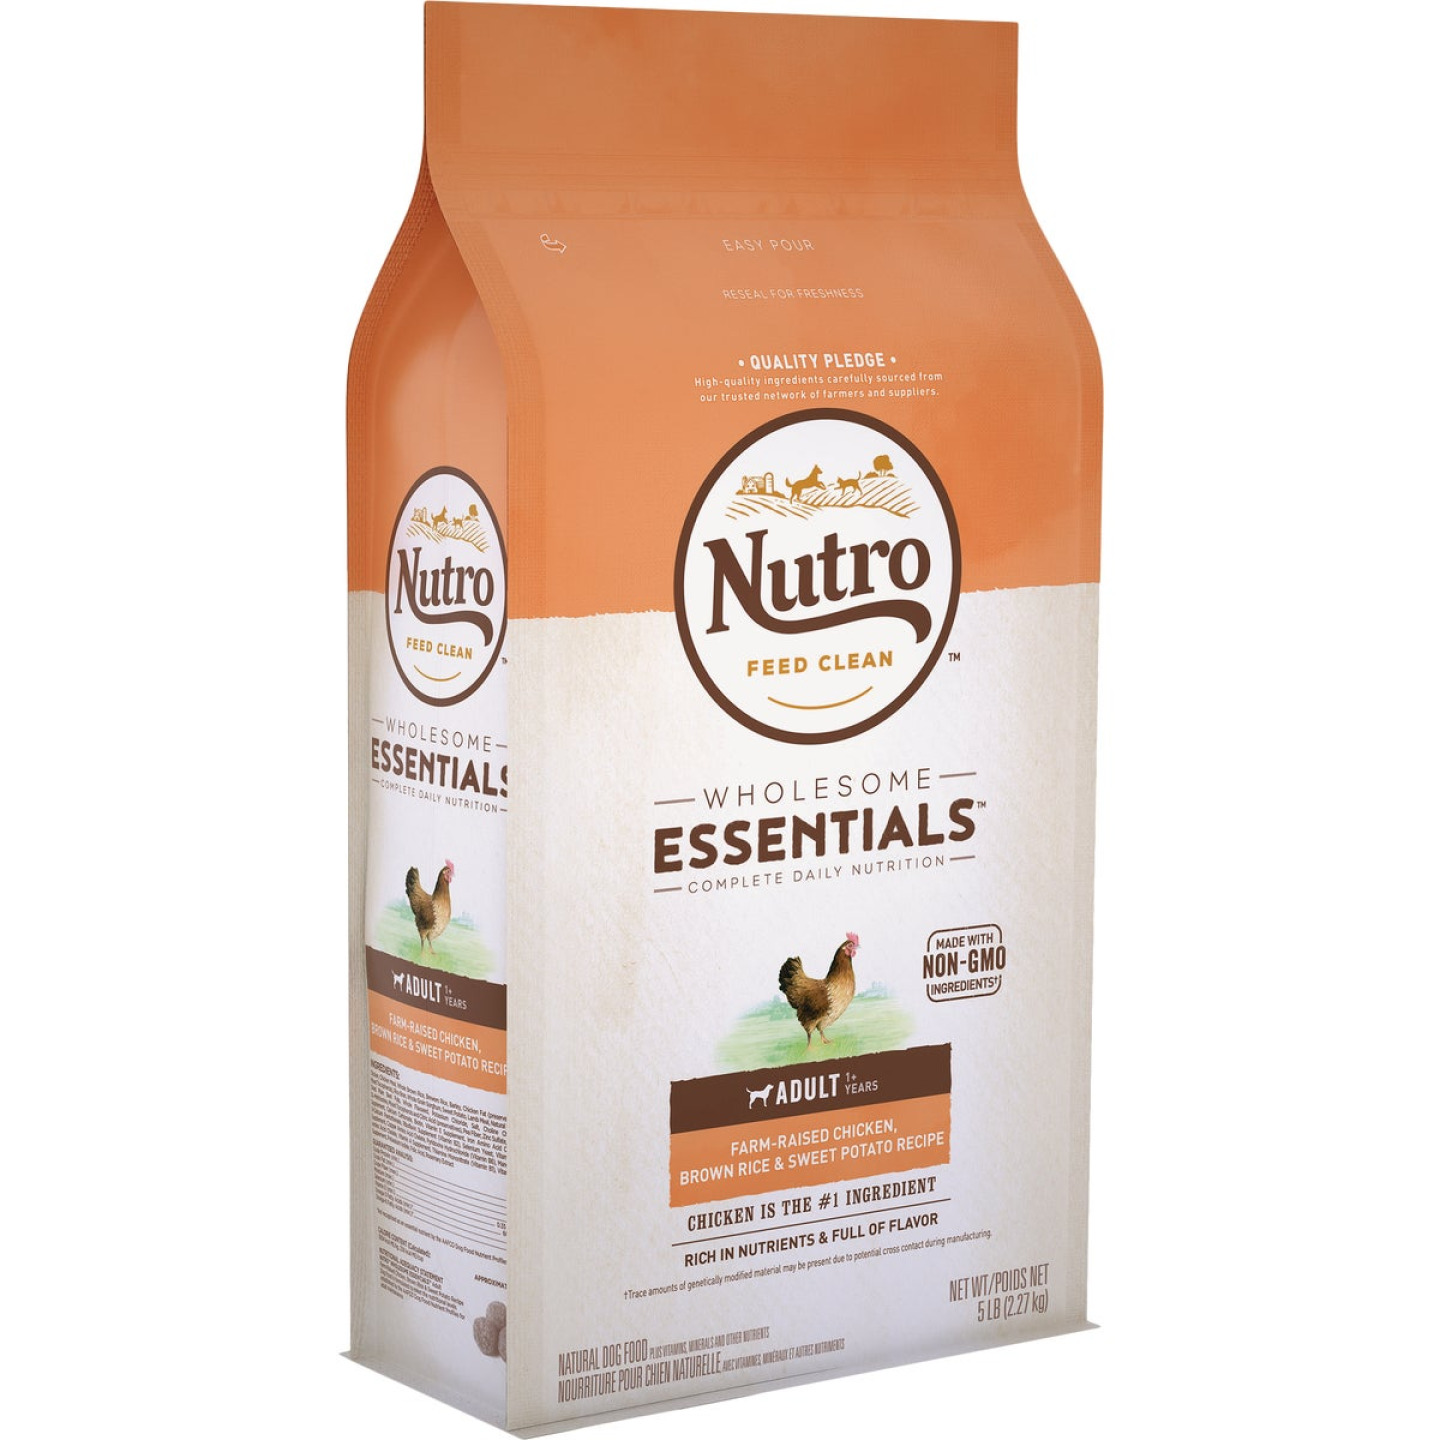 Nutro Wholesome Essentials 5 Lb. Chicken, Brown Rice, & Sweet Potato Adult Dry Dog Food Image 1